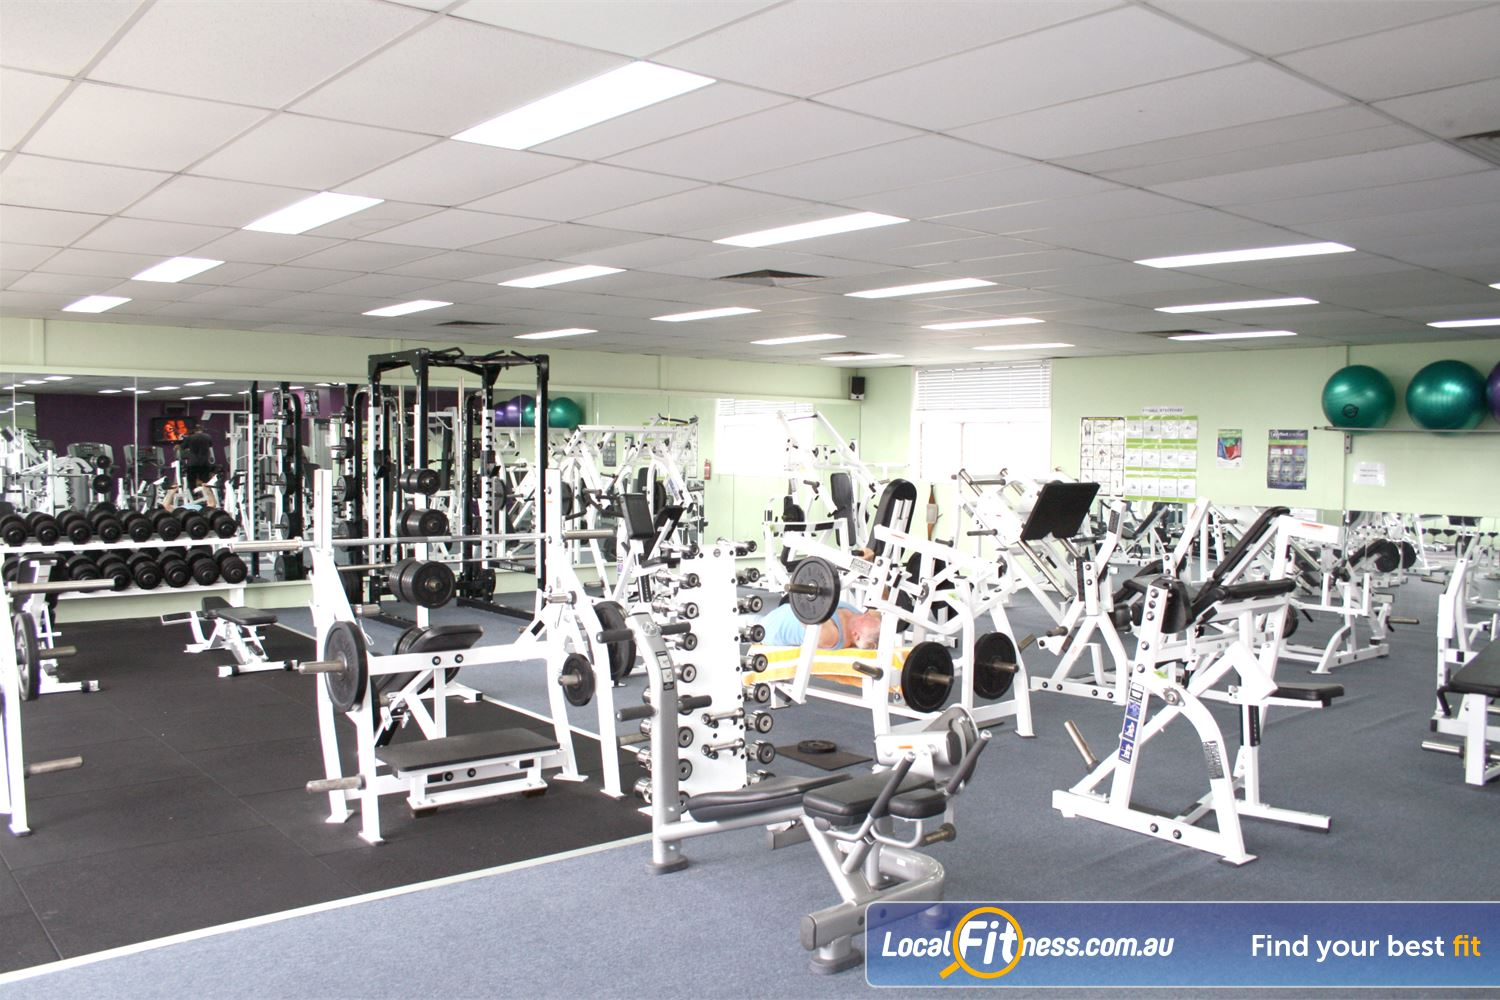 Berry Fitness Centre Edithvale Welcome to our 24/7 Edithvale gym.